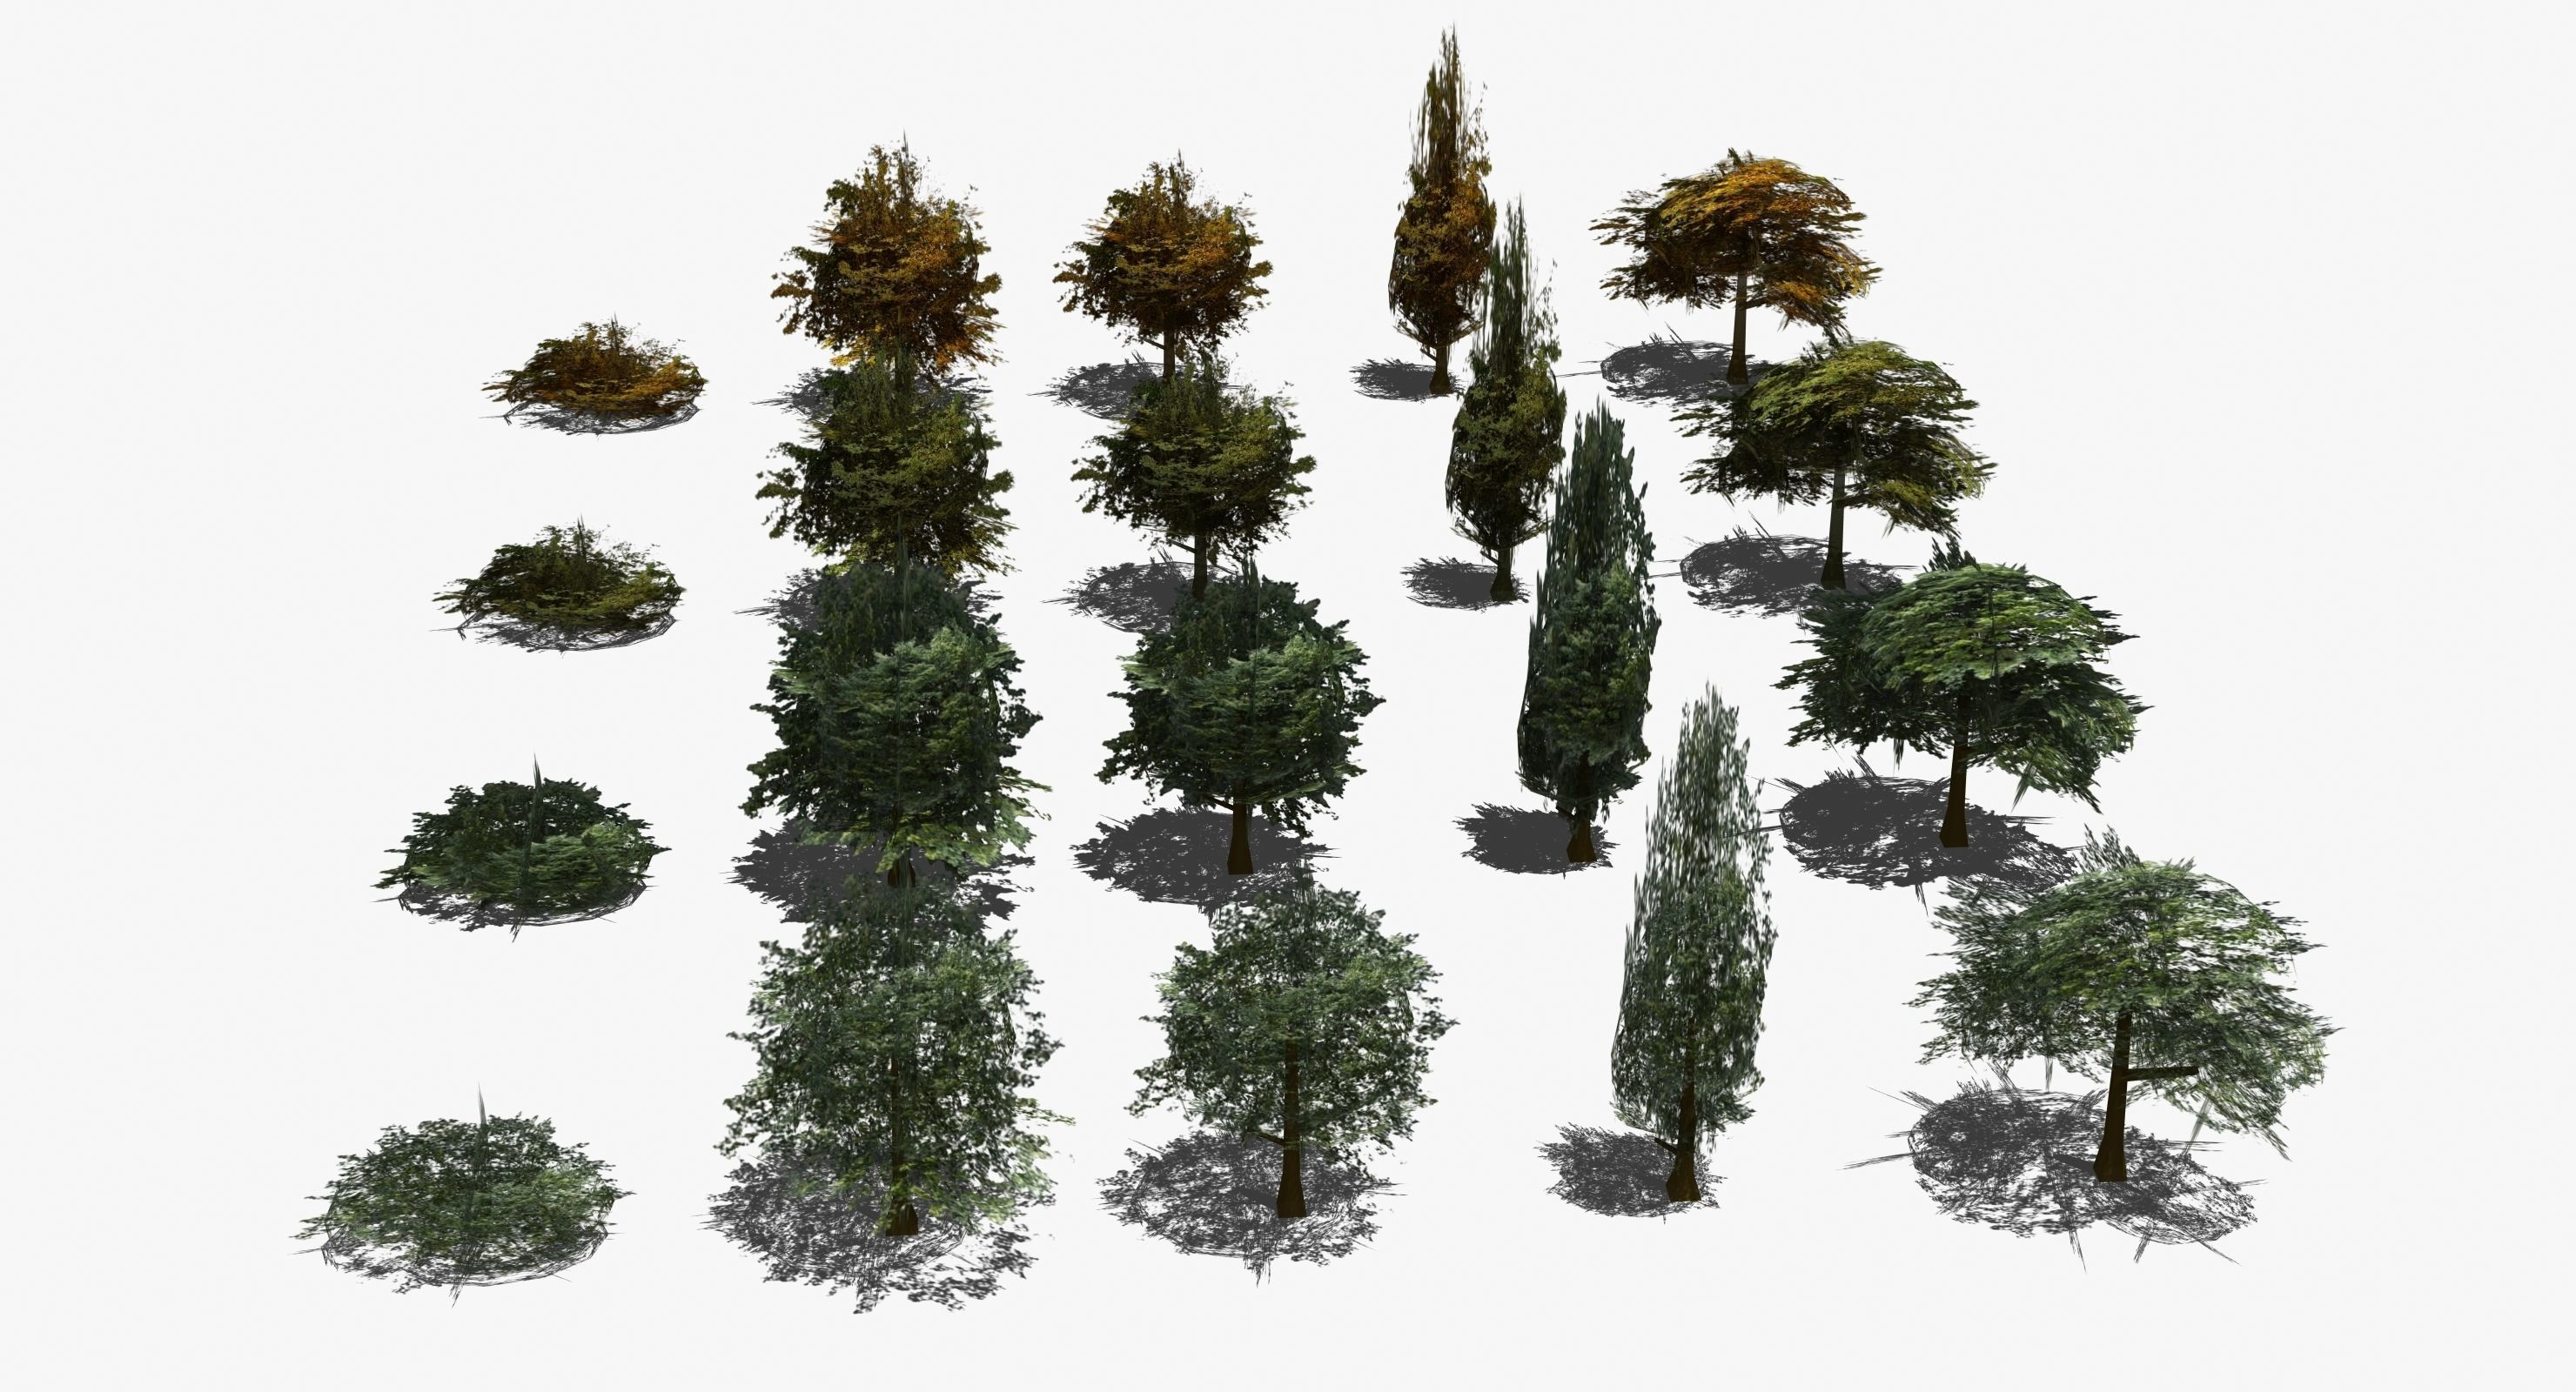 Real Time Trees